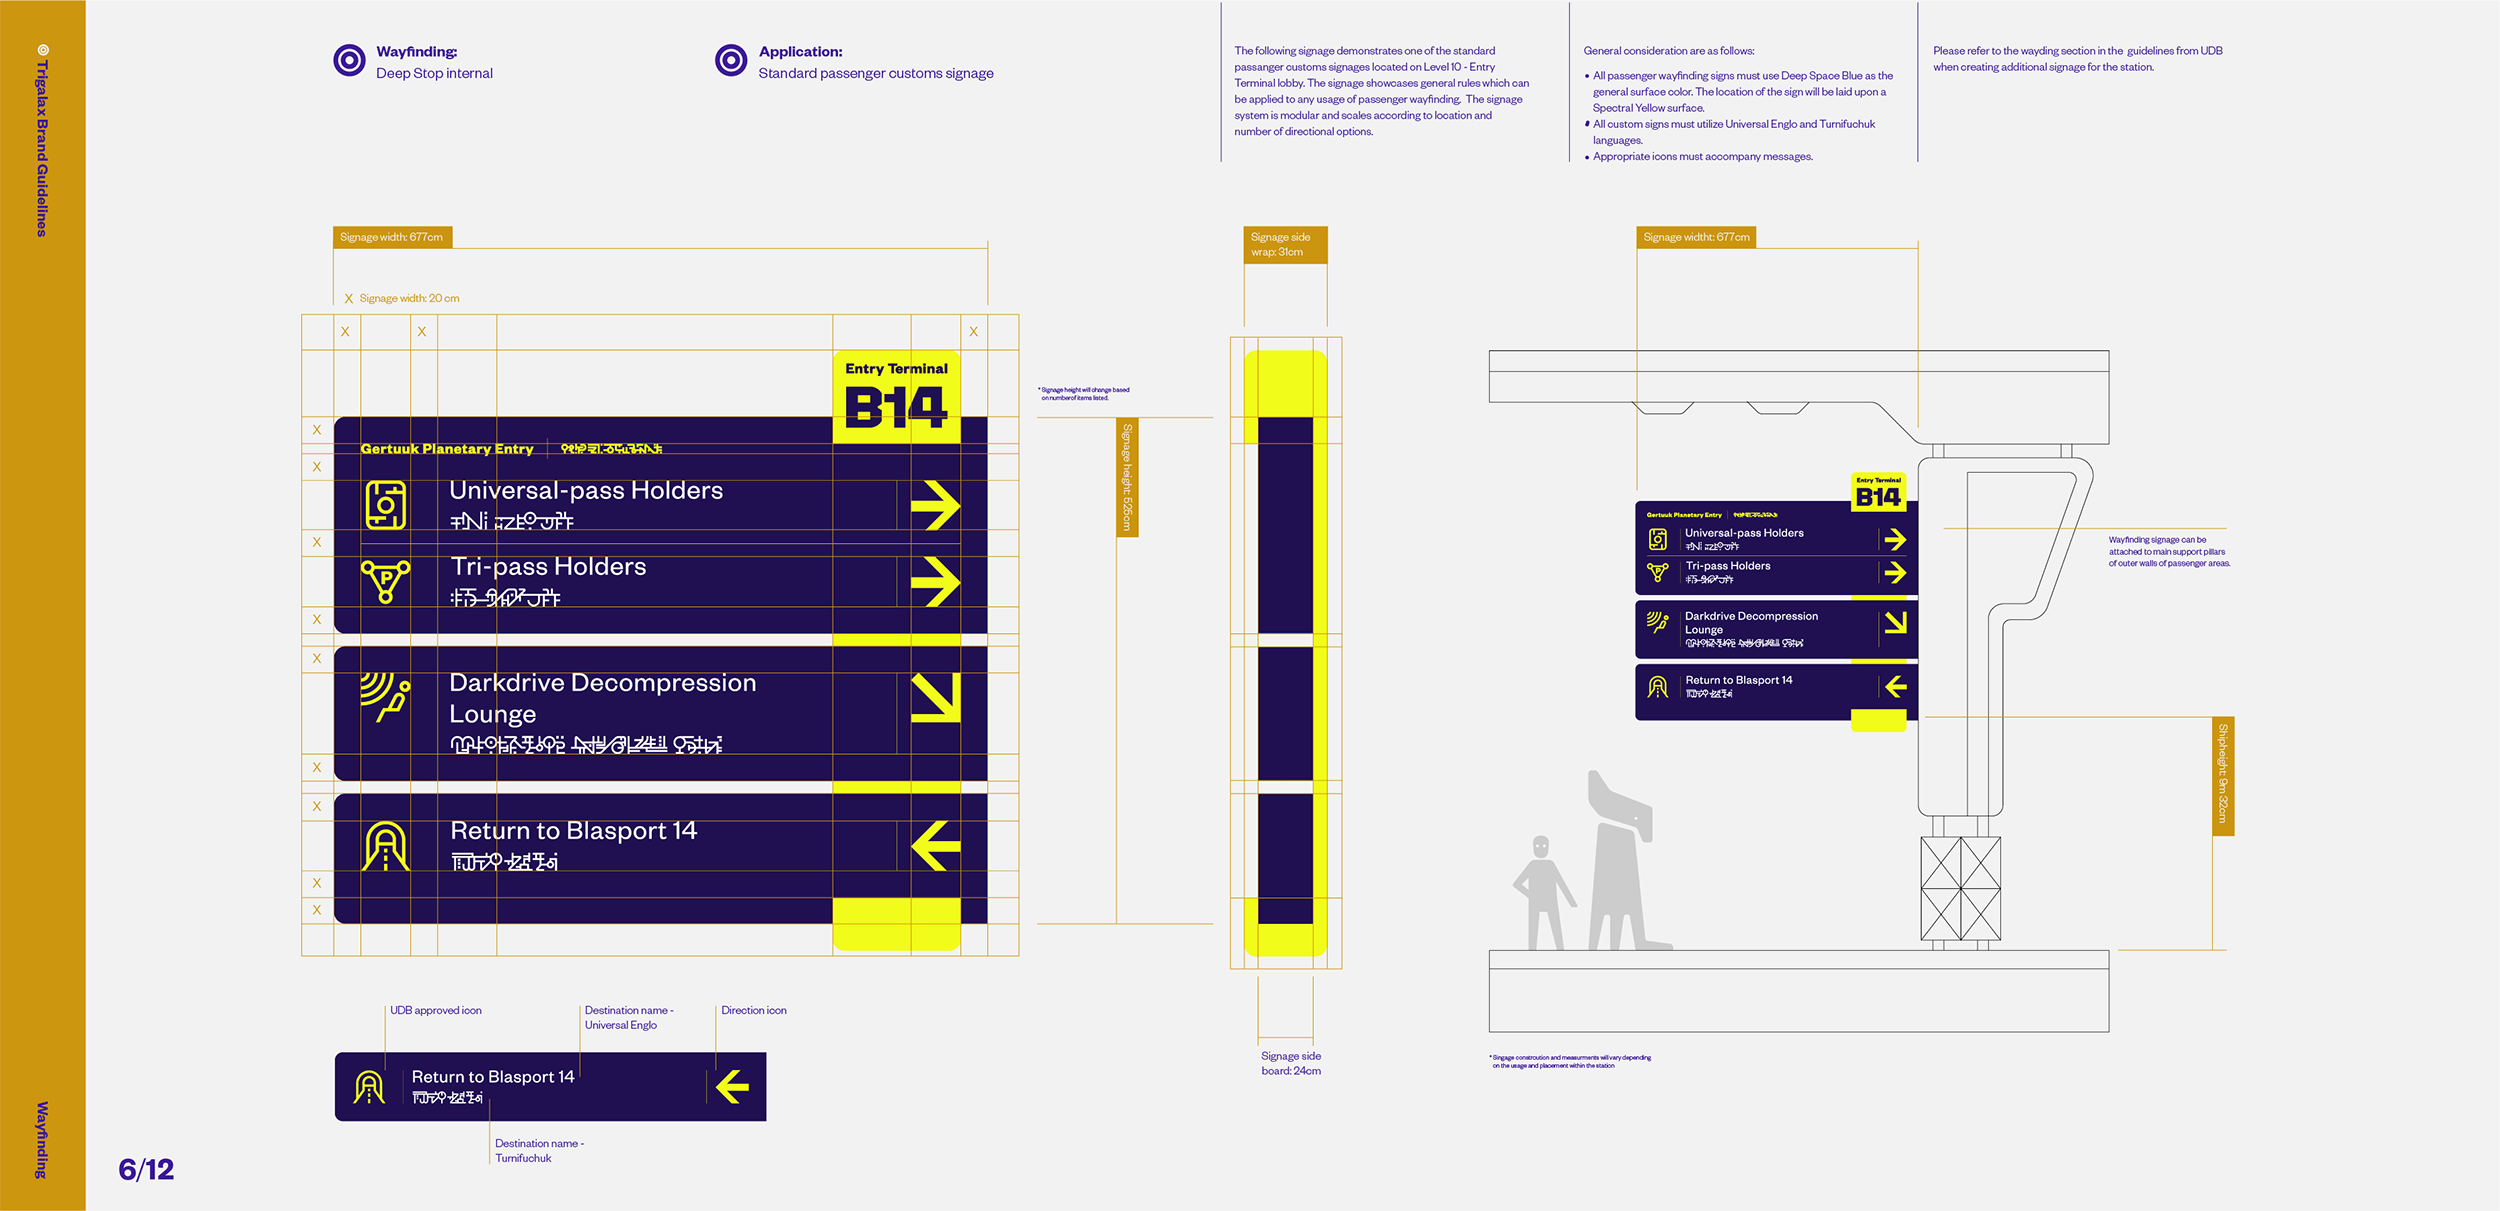 18_Trigalax-Space-Branding-Station-Wayfinding-Signage